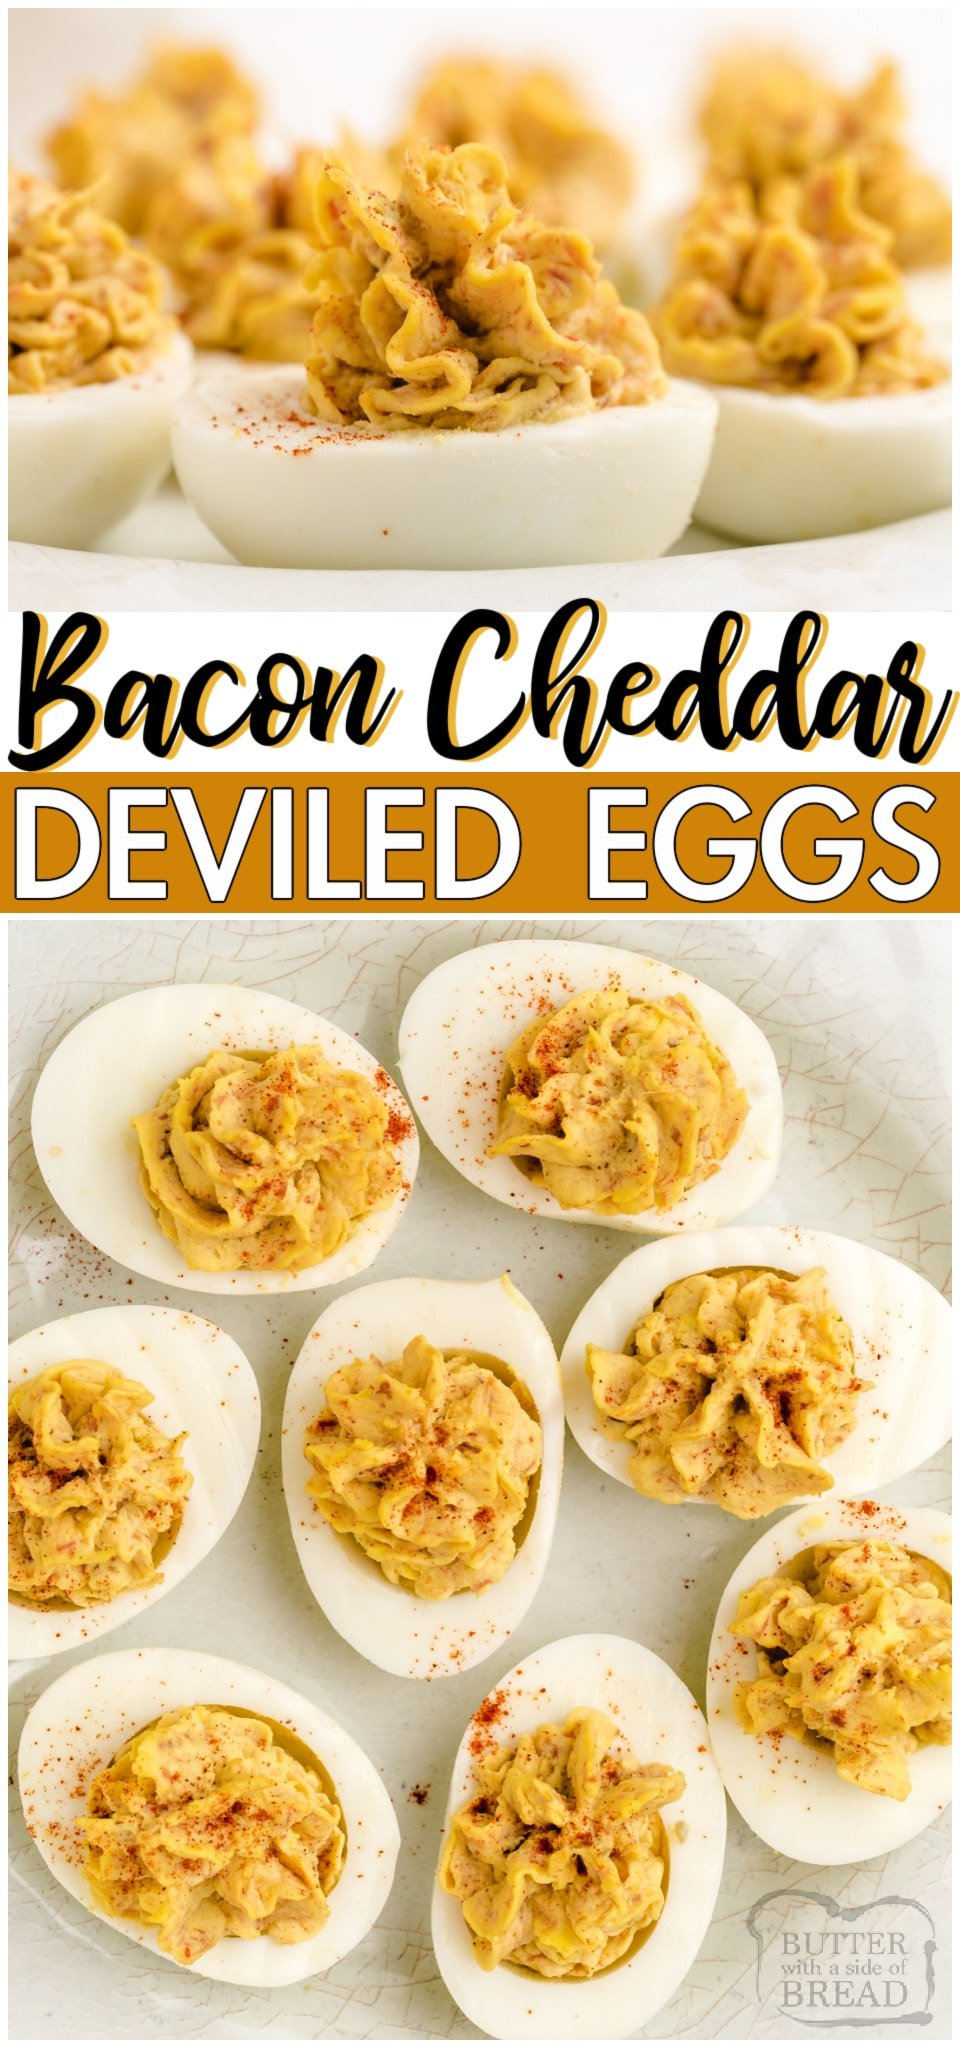 Bacon cheddar deviled eggs is a delicious twist on a classic! Traditional Deviled Eggs recipe with the addition of bacon and cheddar cheese for a fantastic savory appetizer.#eggs #appetizer #deviled #bacon #cheddar #cheese #easyrecipe from BUTTER WITH A SIDE OF BREAD